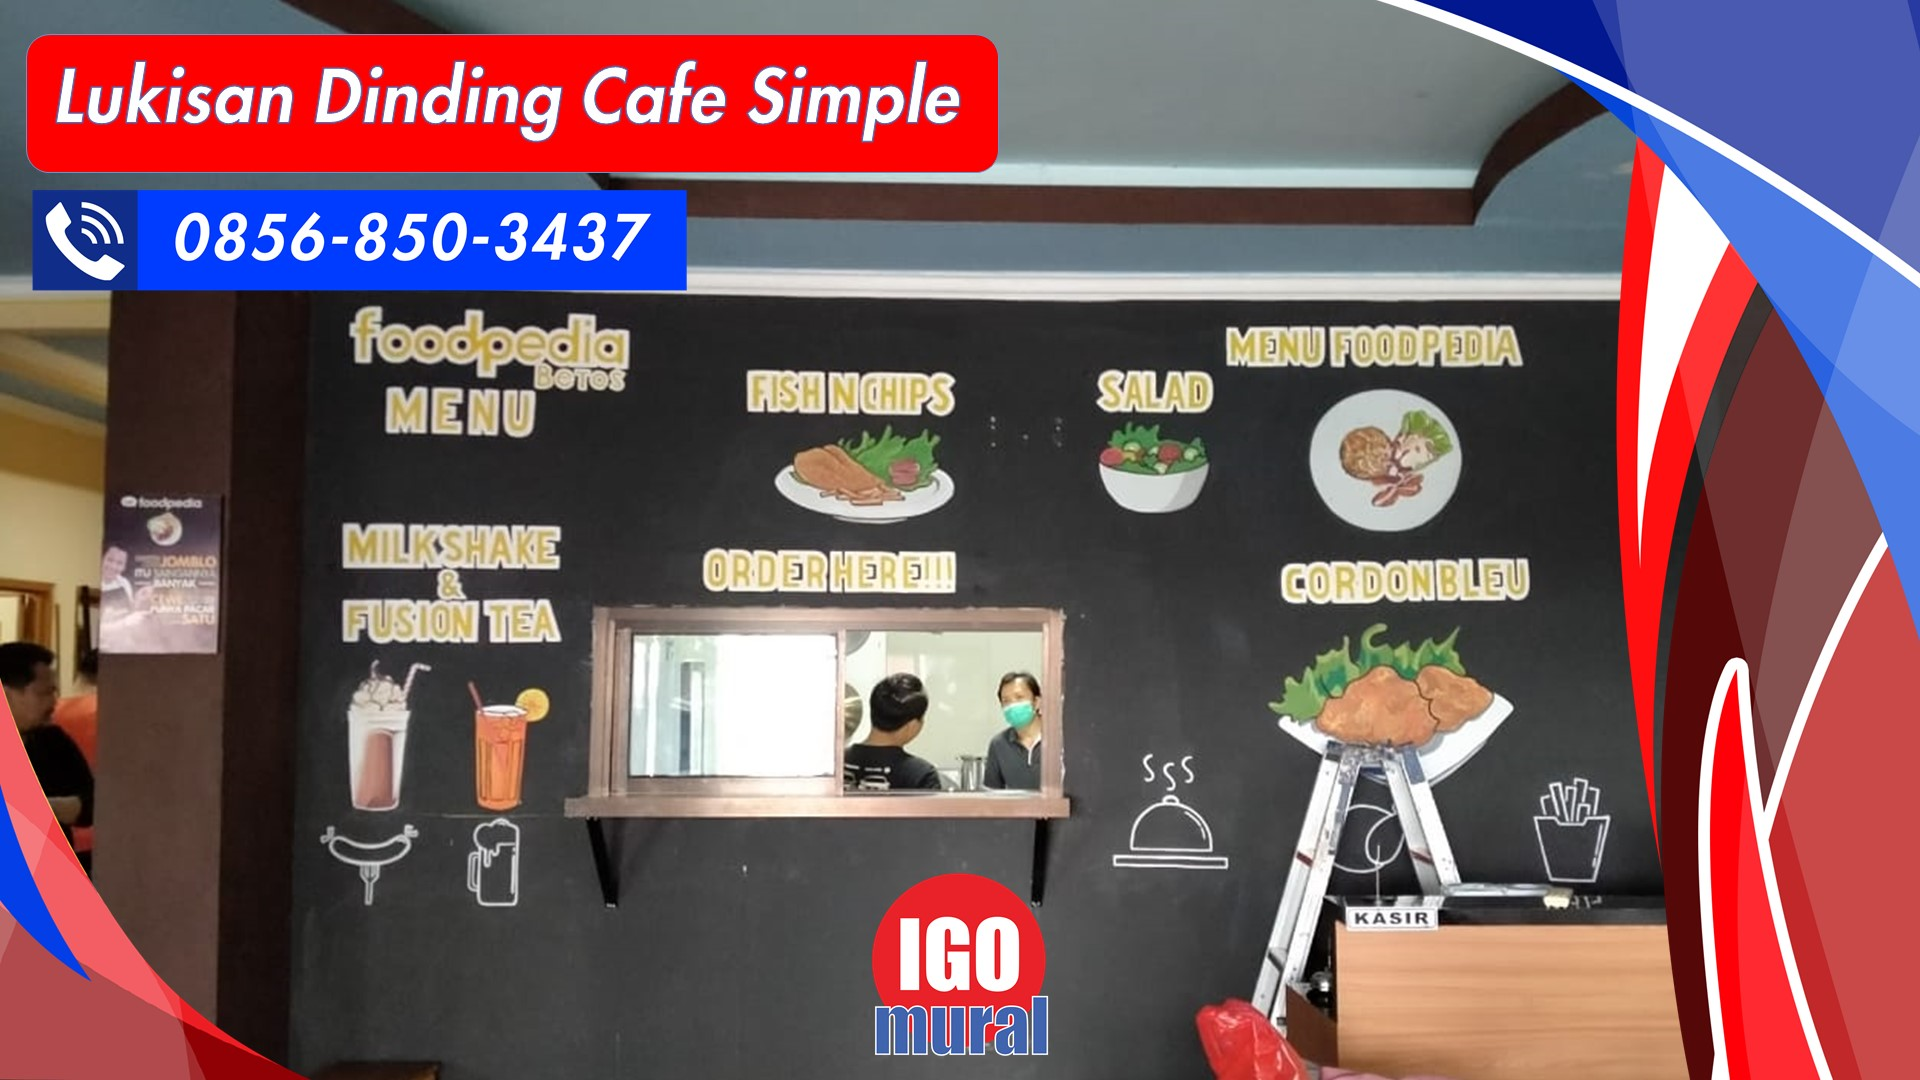 Lukisan dinding cafe simple